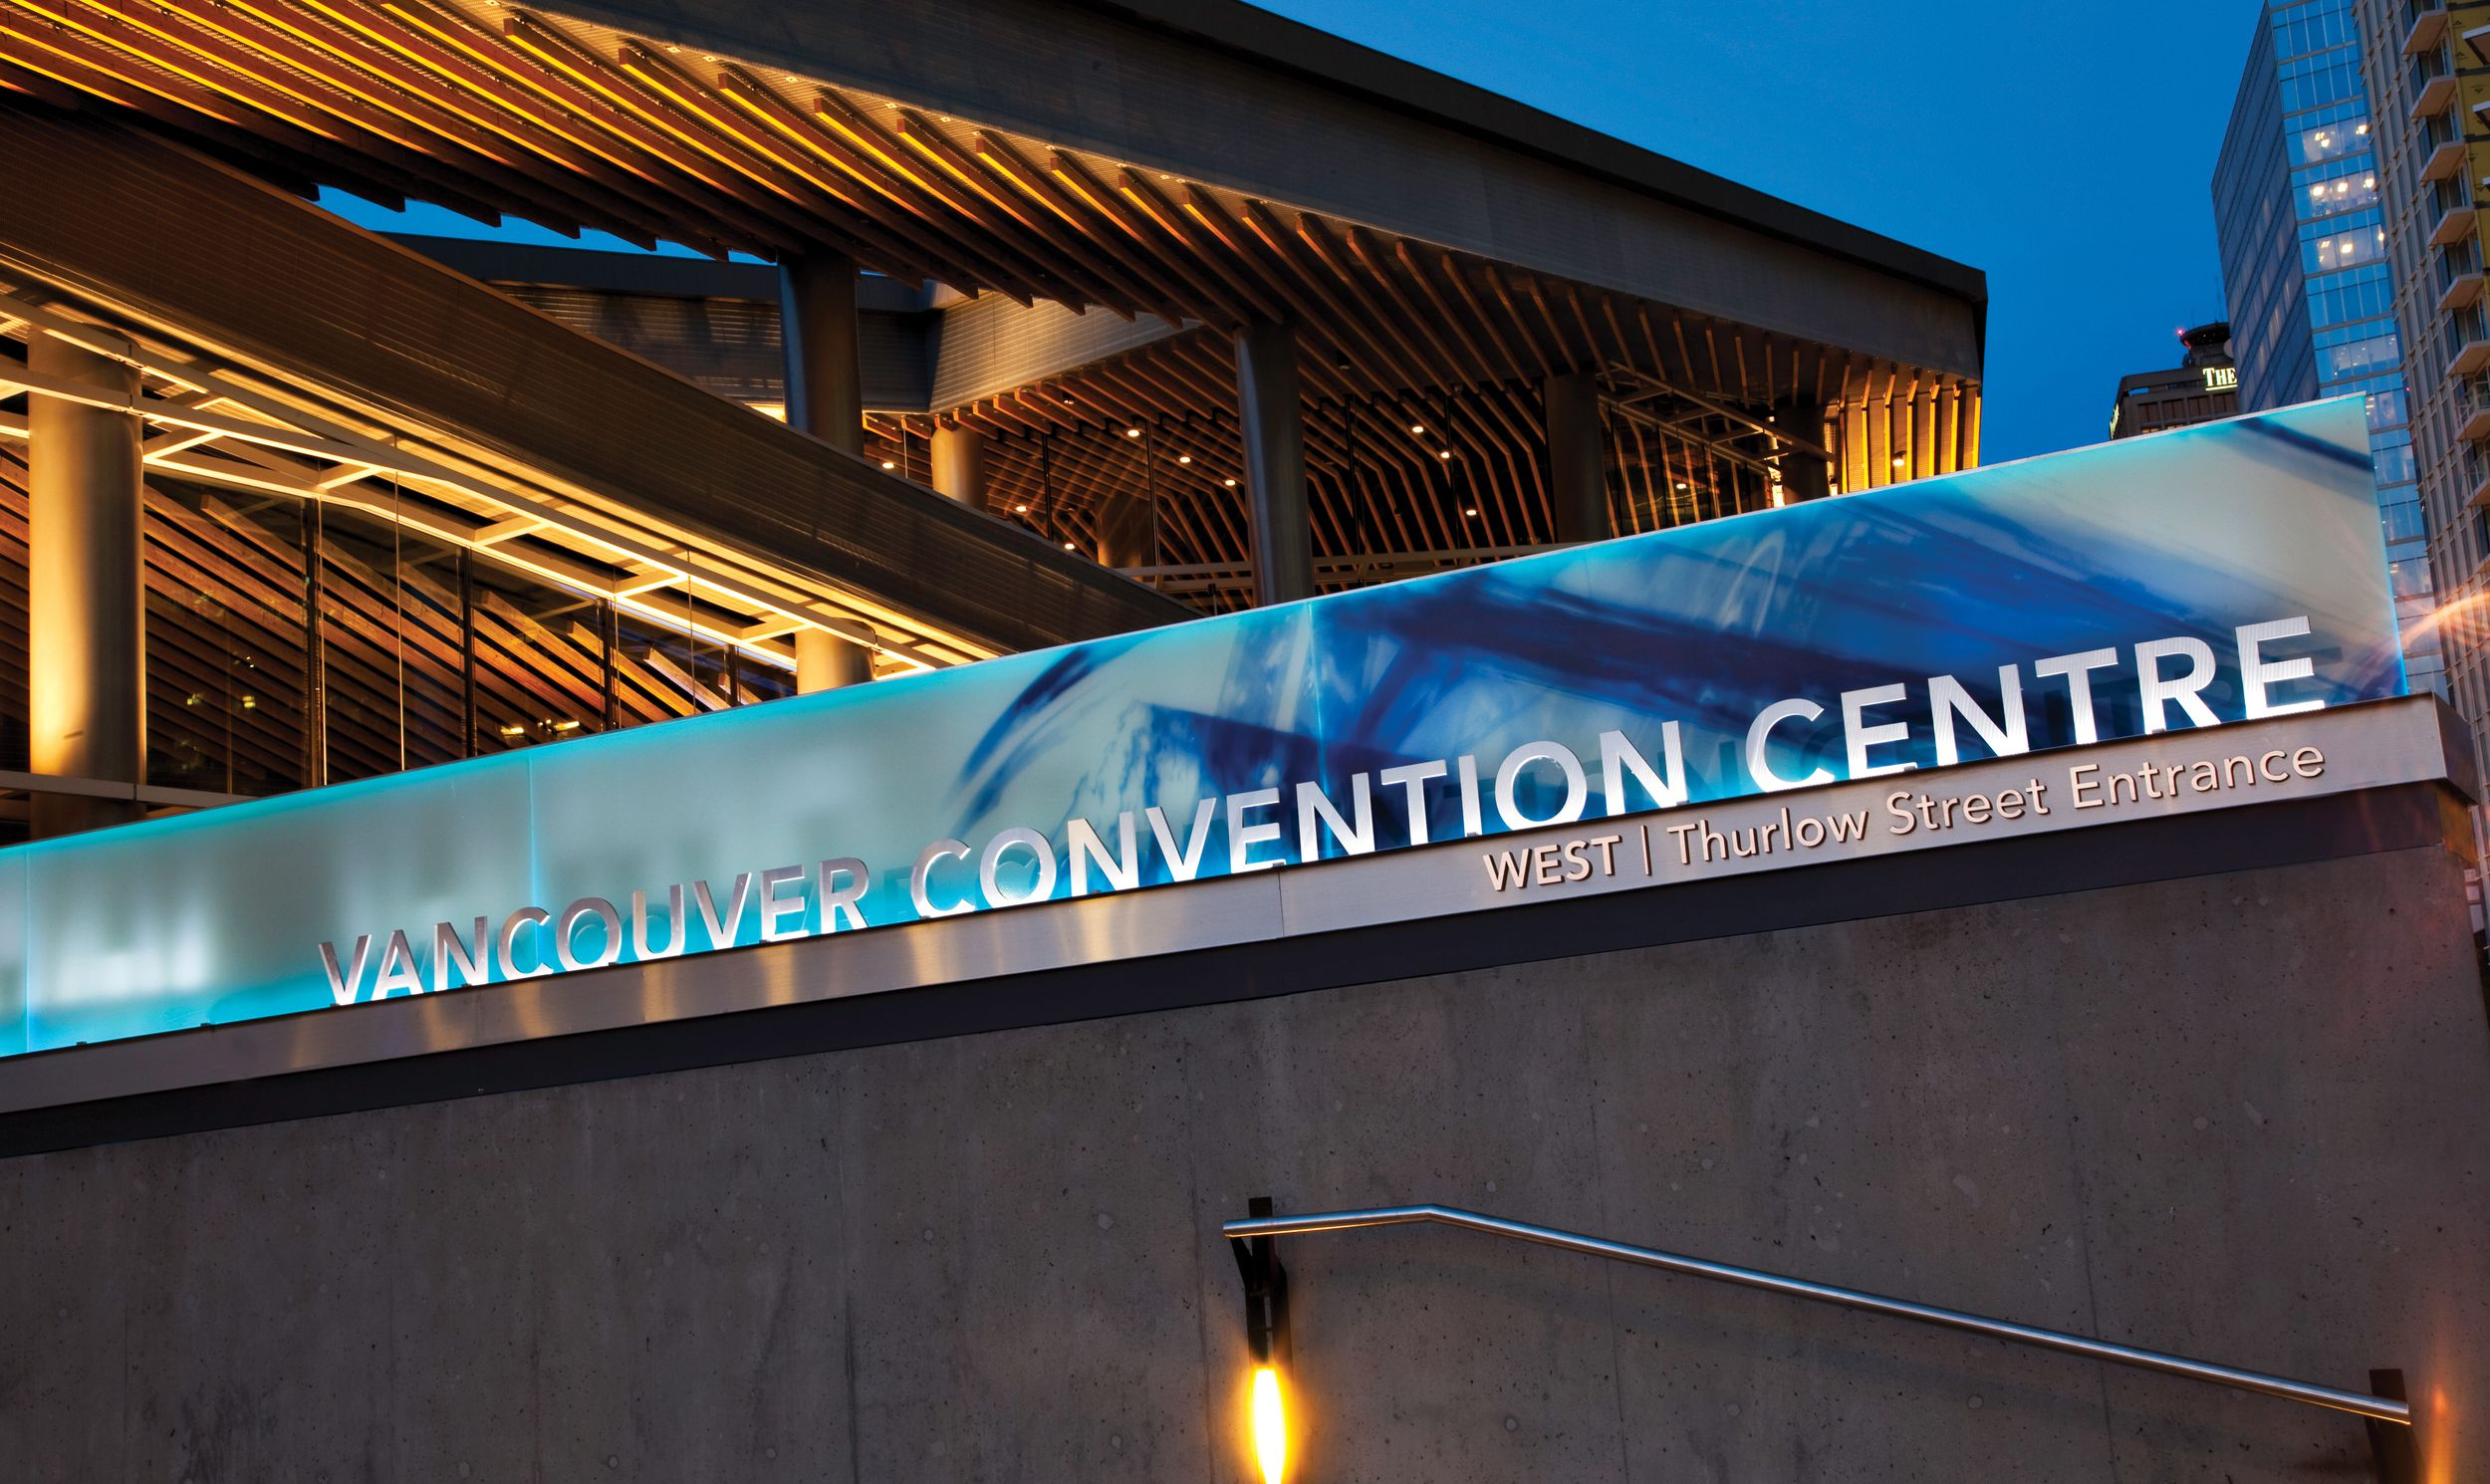 Vancouver convention centre entrance signage